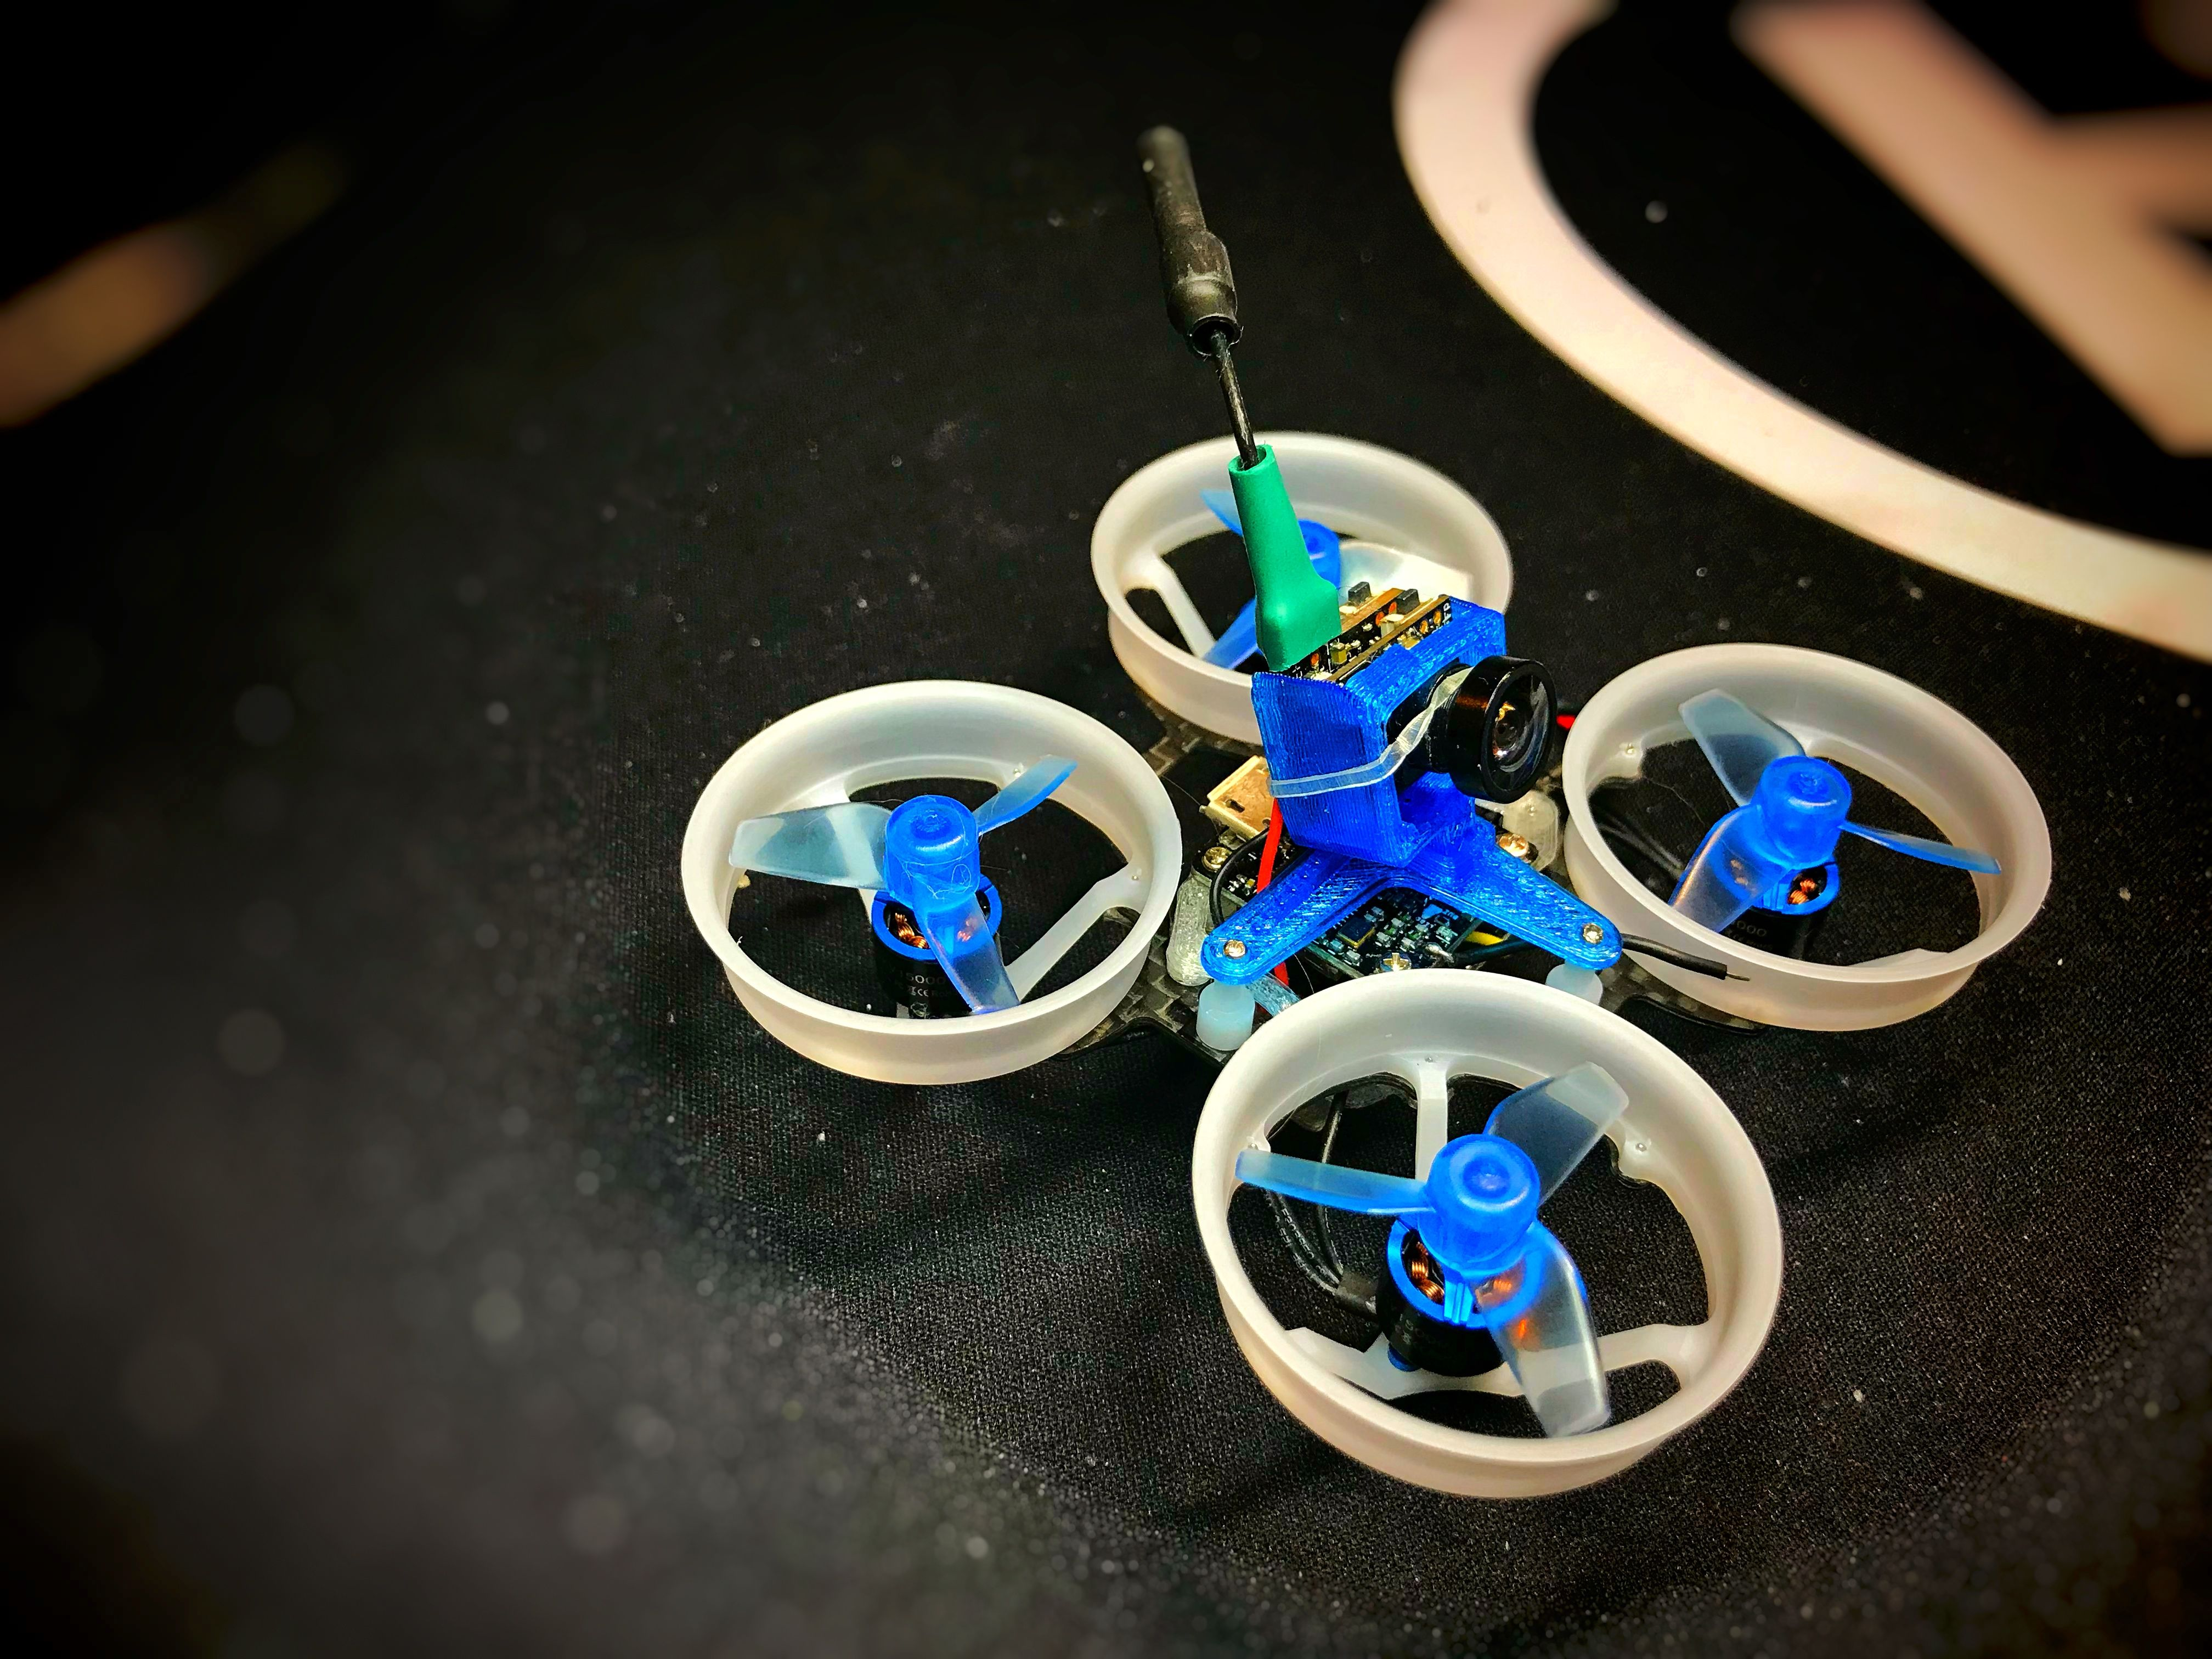 Brushless Whoop Saga | PART 1